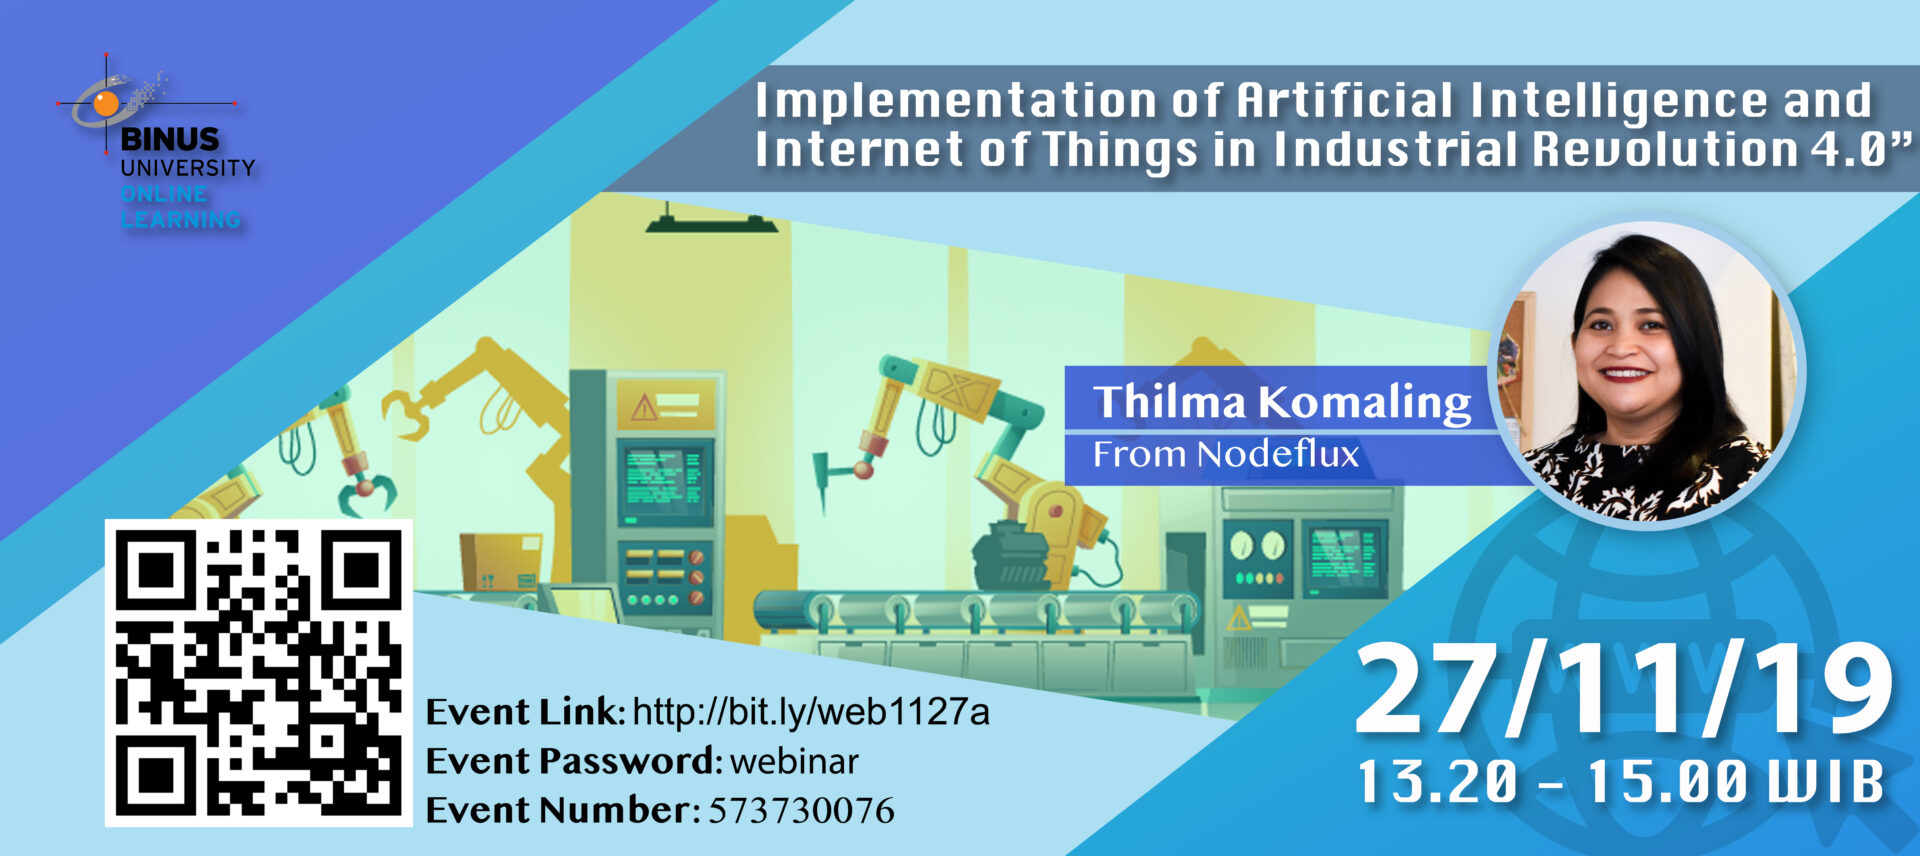 Implementation of Artificial Intelligence and Internet of Things in Industrial Revolution 4.0